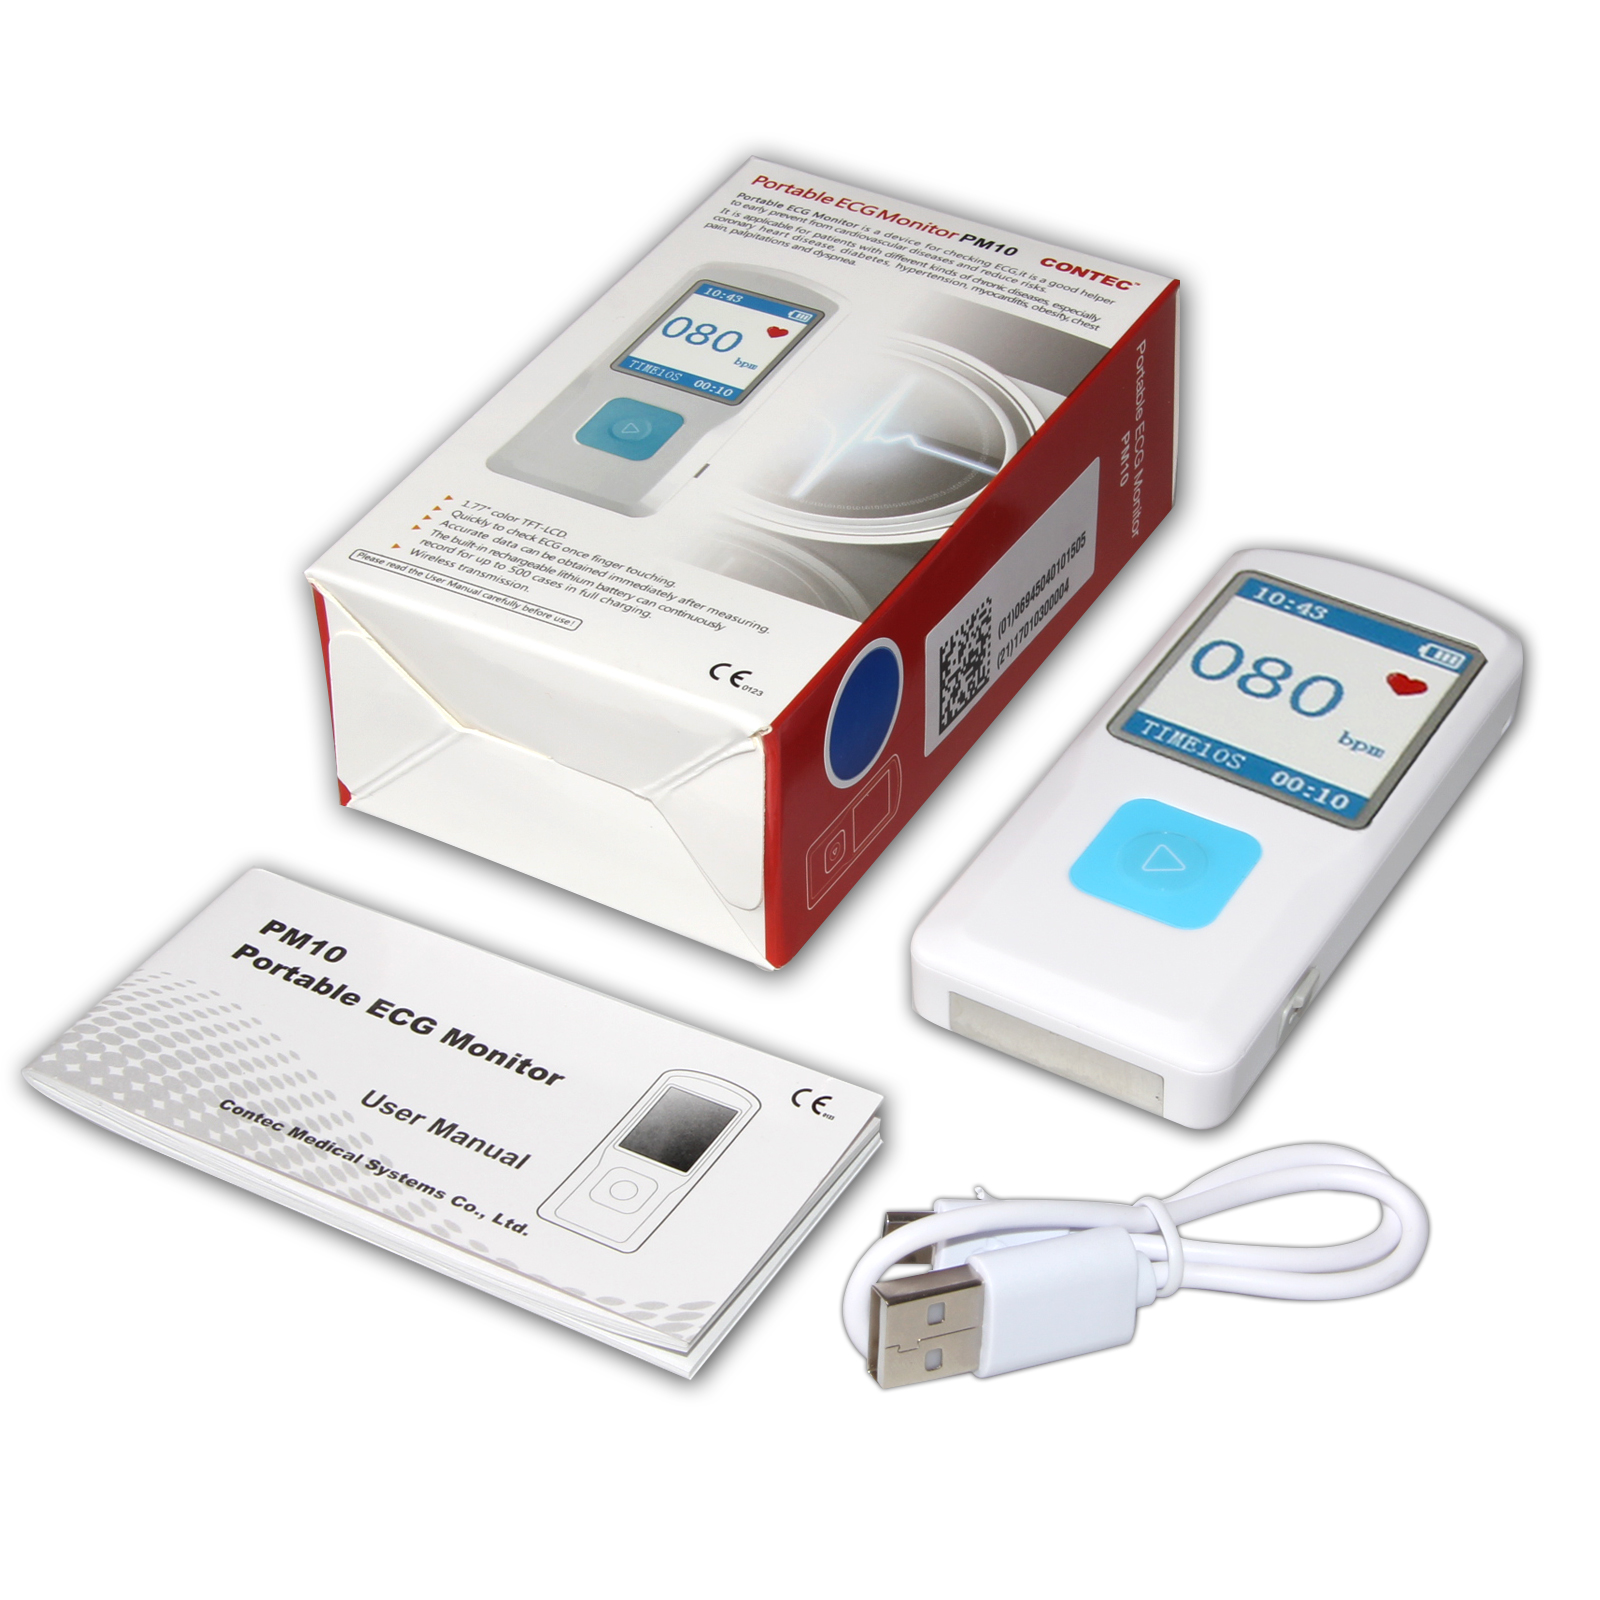 "PM10 Portable ECG Monitor 1.77"" color TFT-LCD Display with Bluetooth Wireless Transmission"